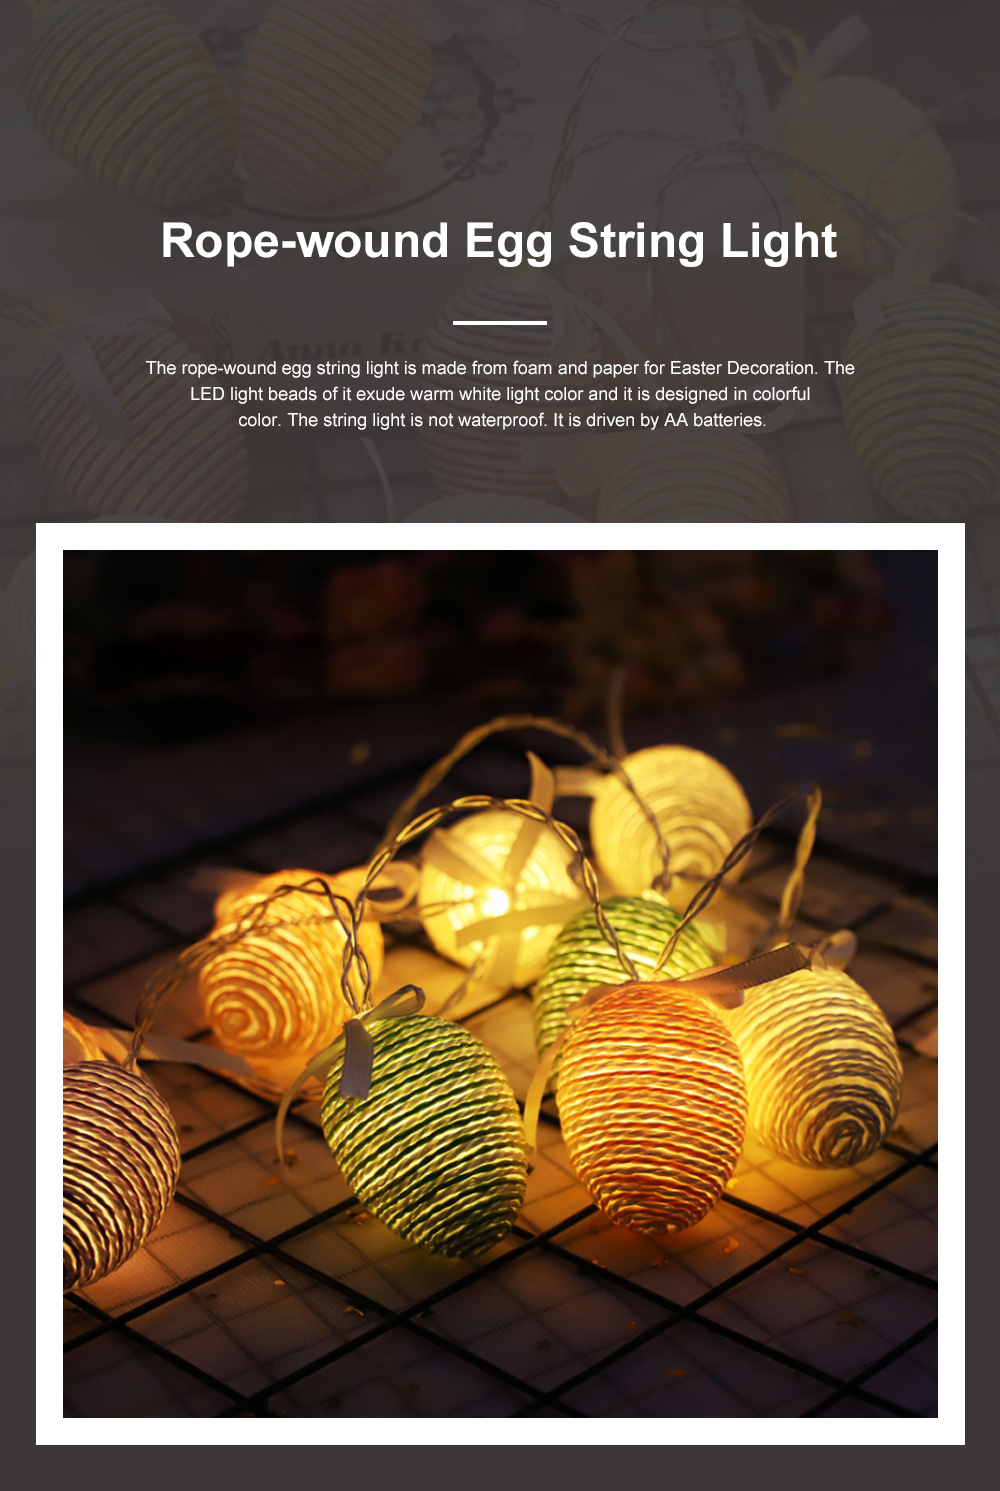 10 20 30 LEDs Creative Warm Rope-wound Colored Egg String Light for Easter Decoration Battery-powered LED Lamp String 1.5m 3m 4.5m Warm White 0